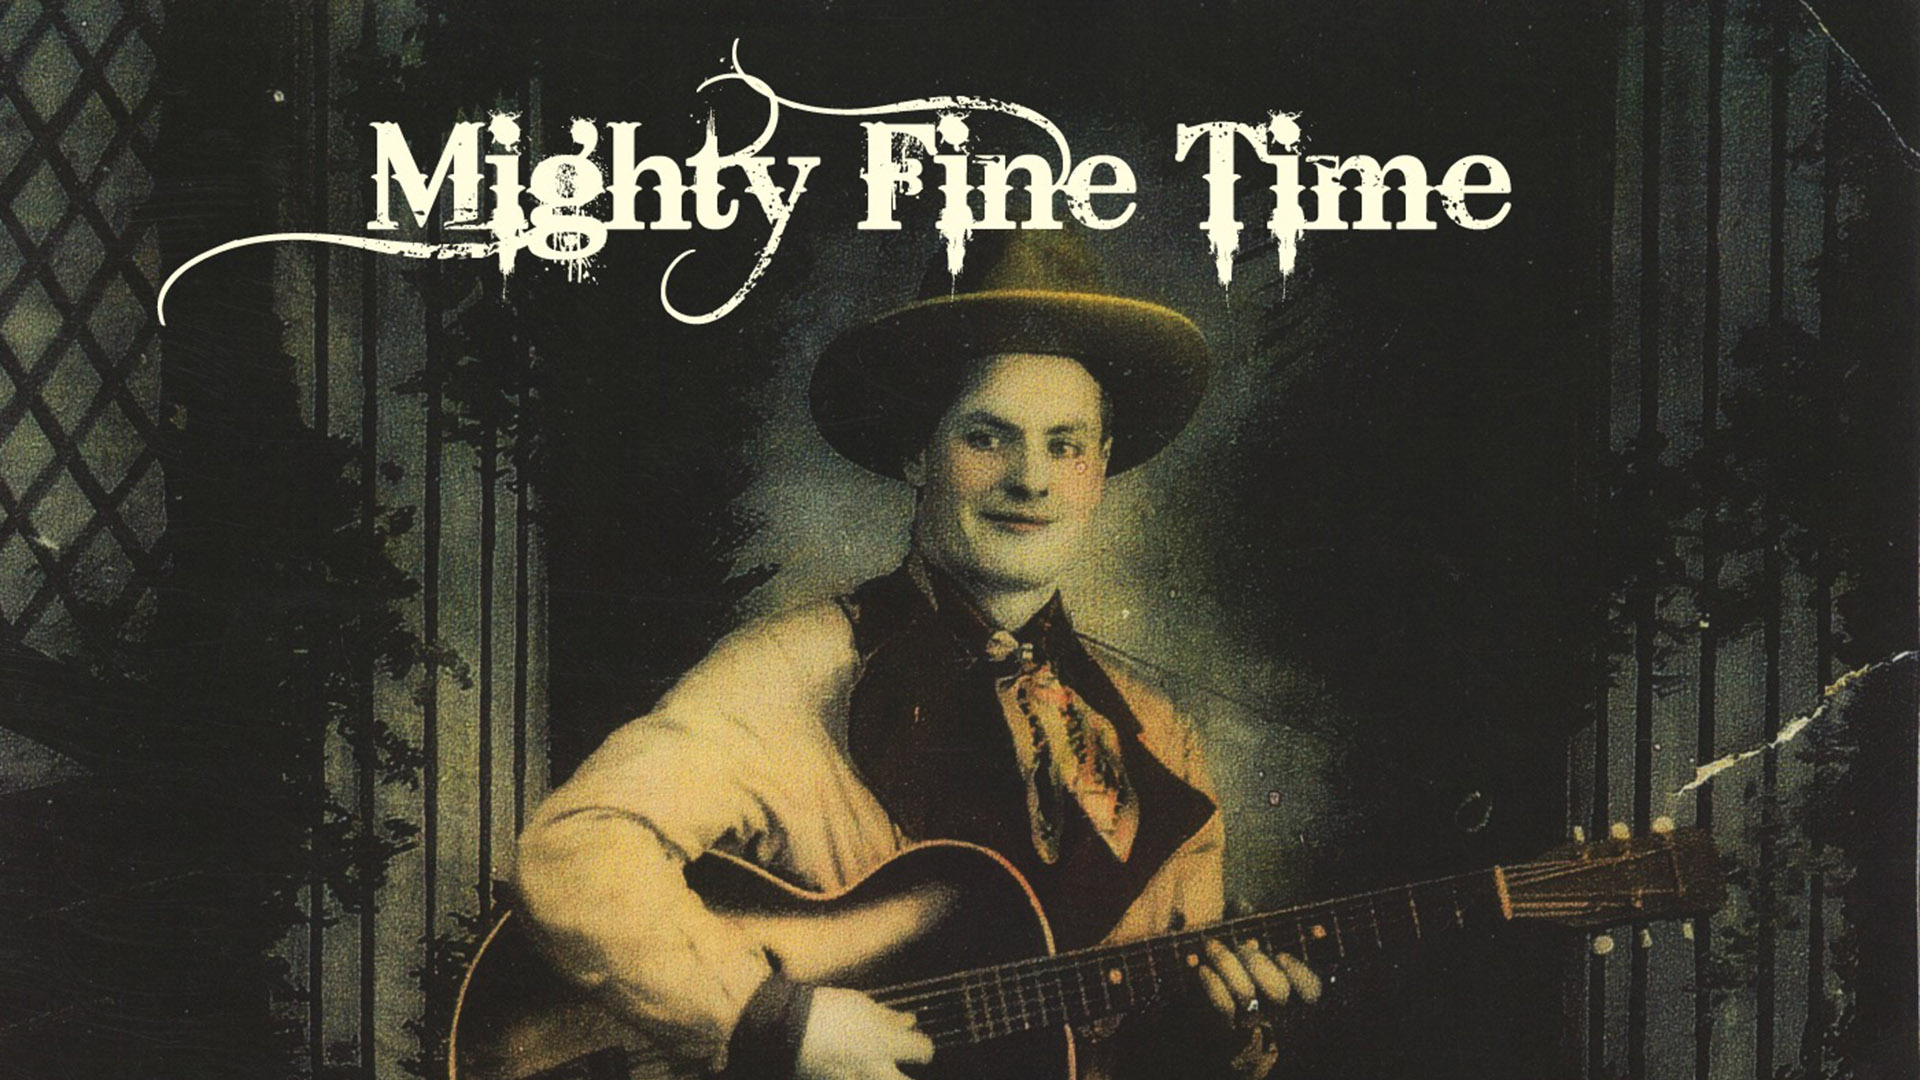 Mighty Fine Time